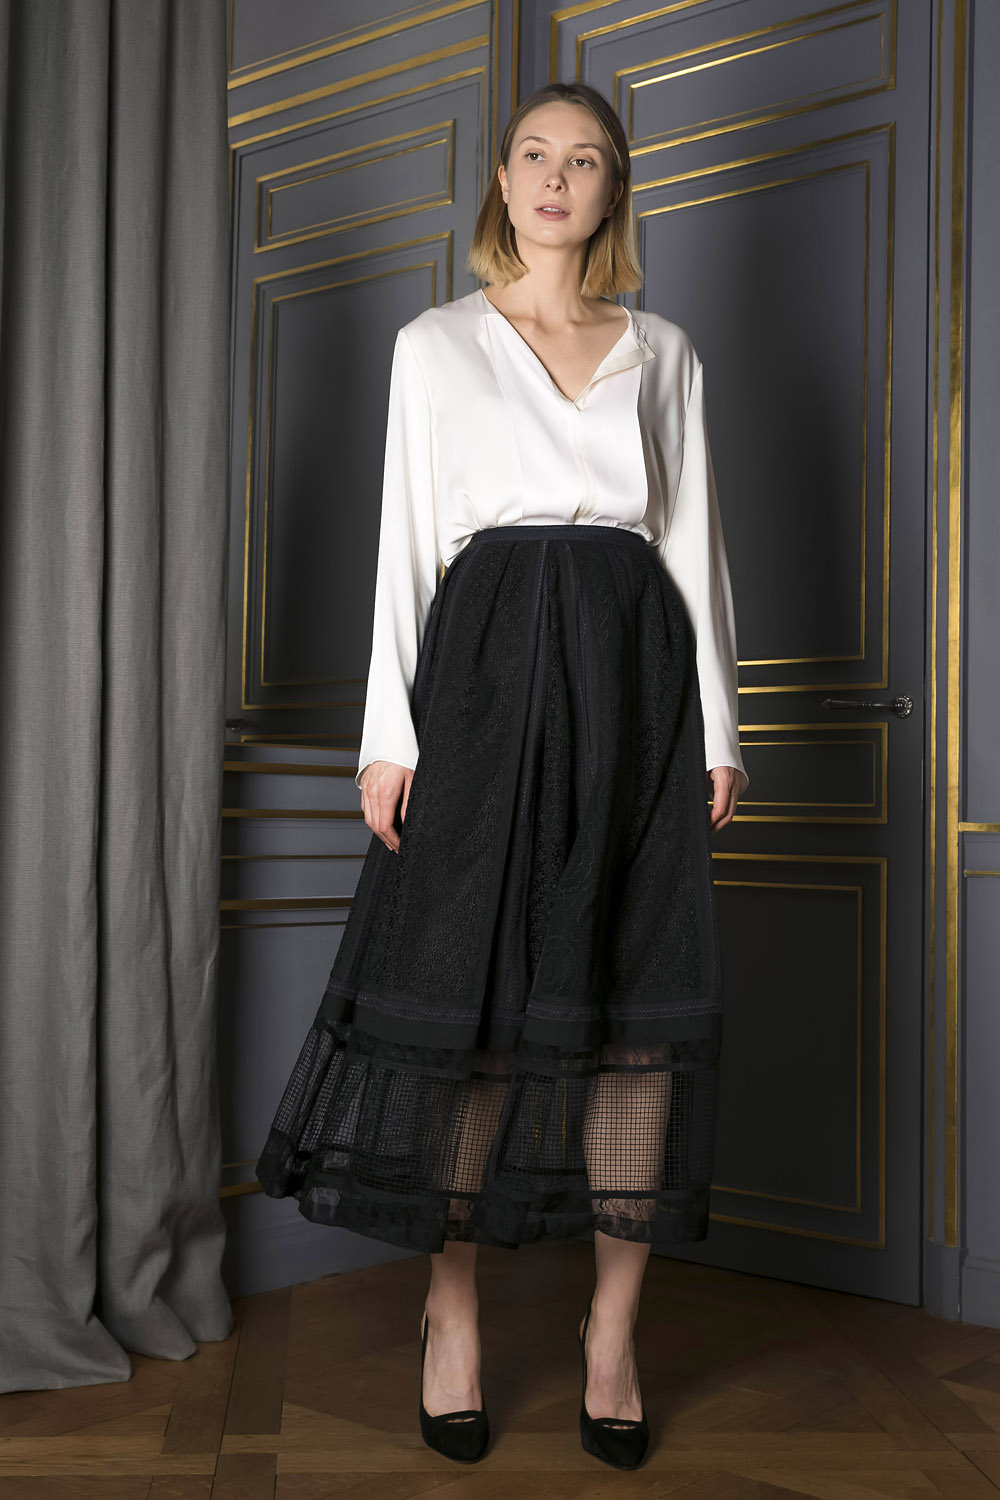 Ankle length A-line skirt with a sheer bottom